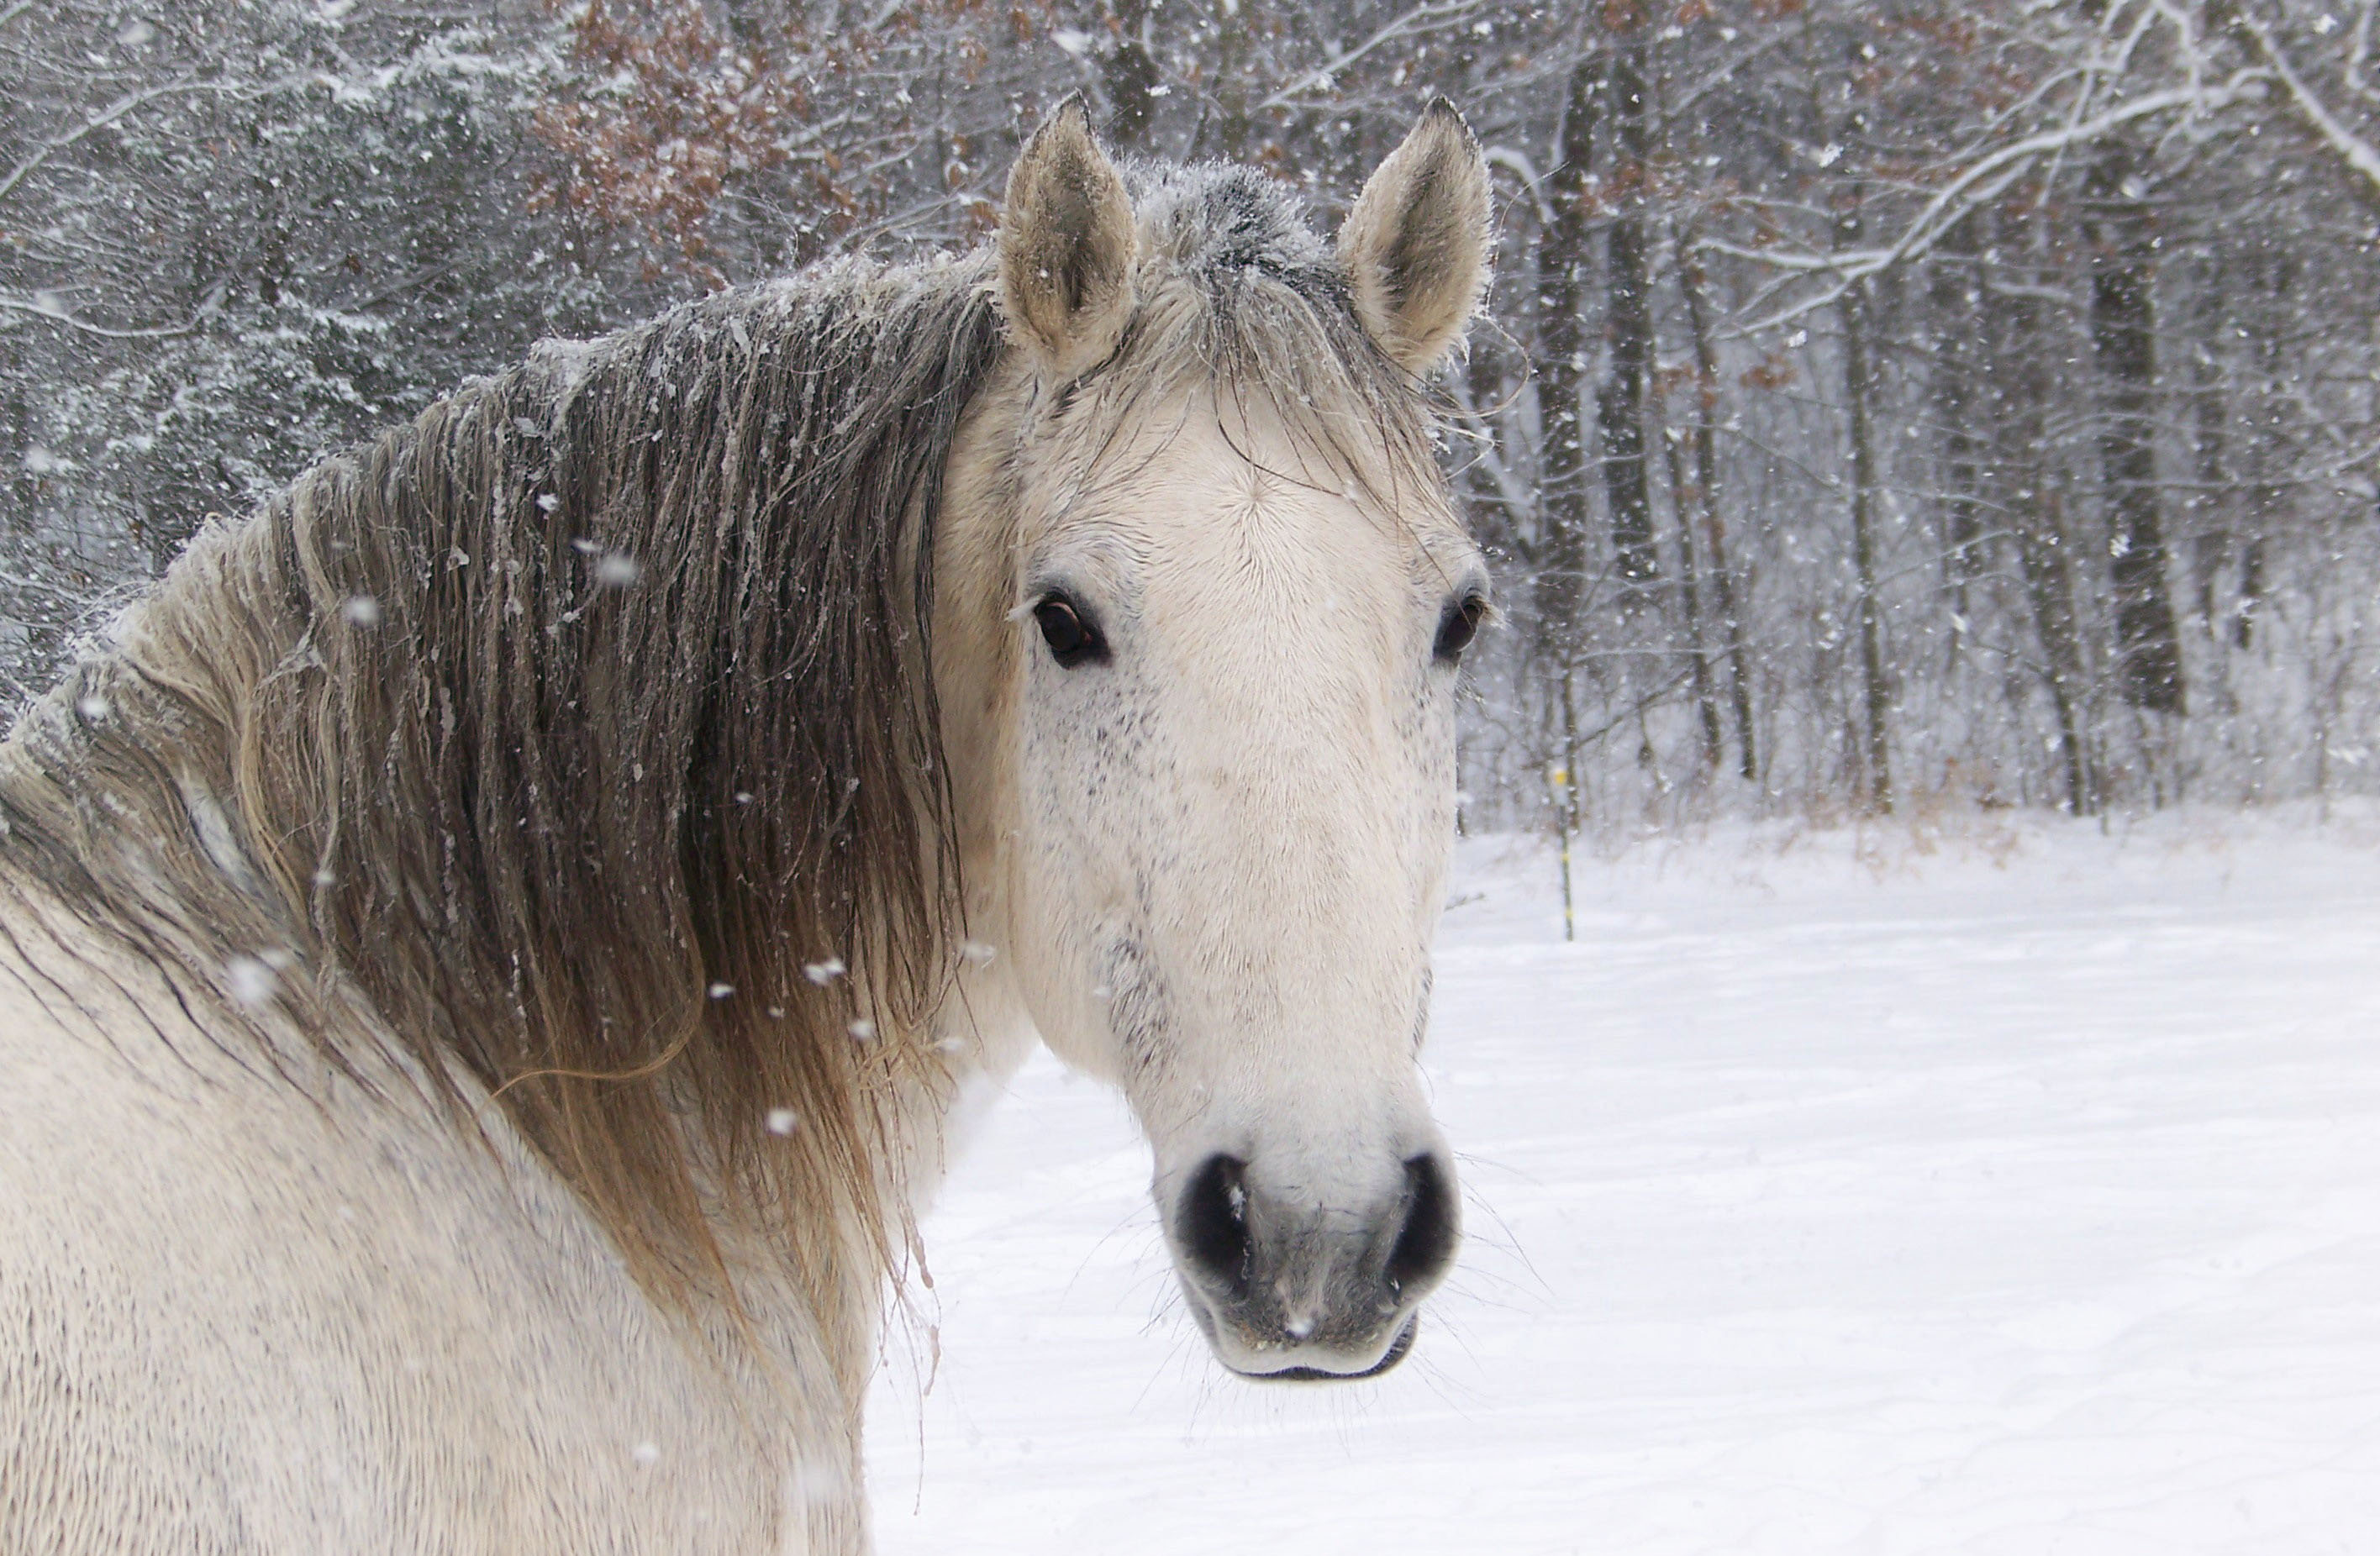 Horse Winter Related Keywords & SuggestionsHorse Winter Long Tail 376